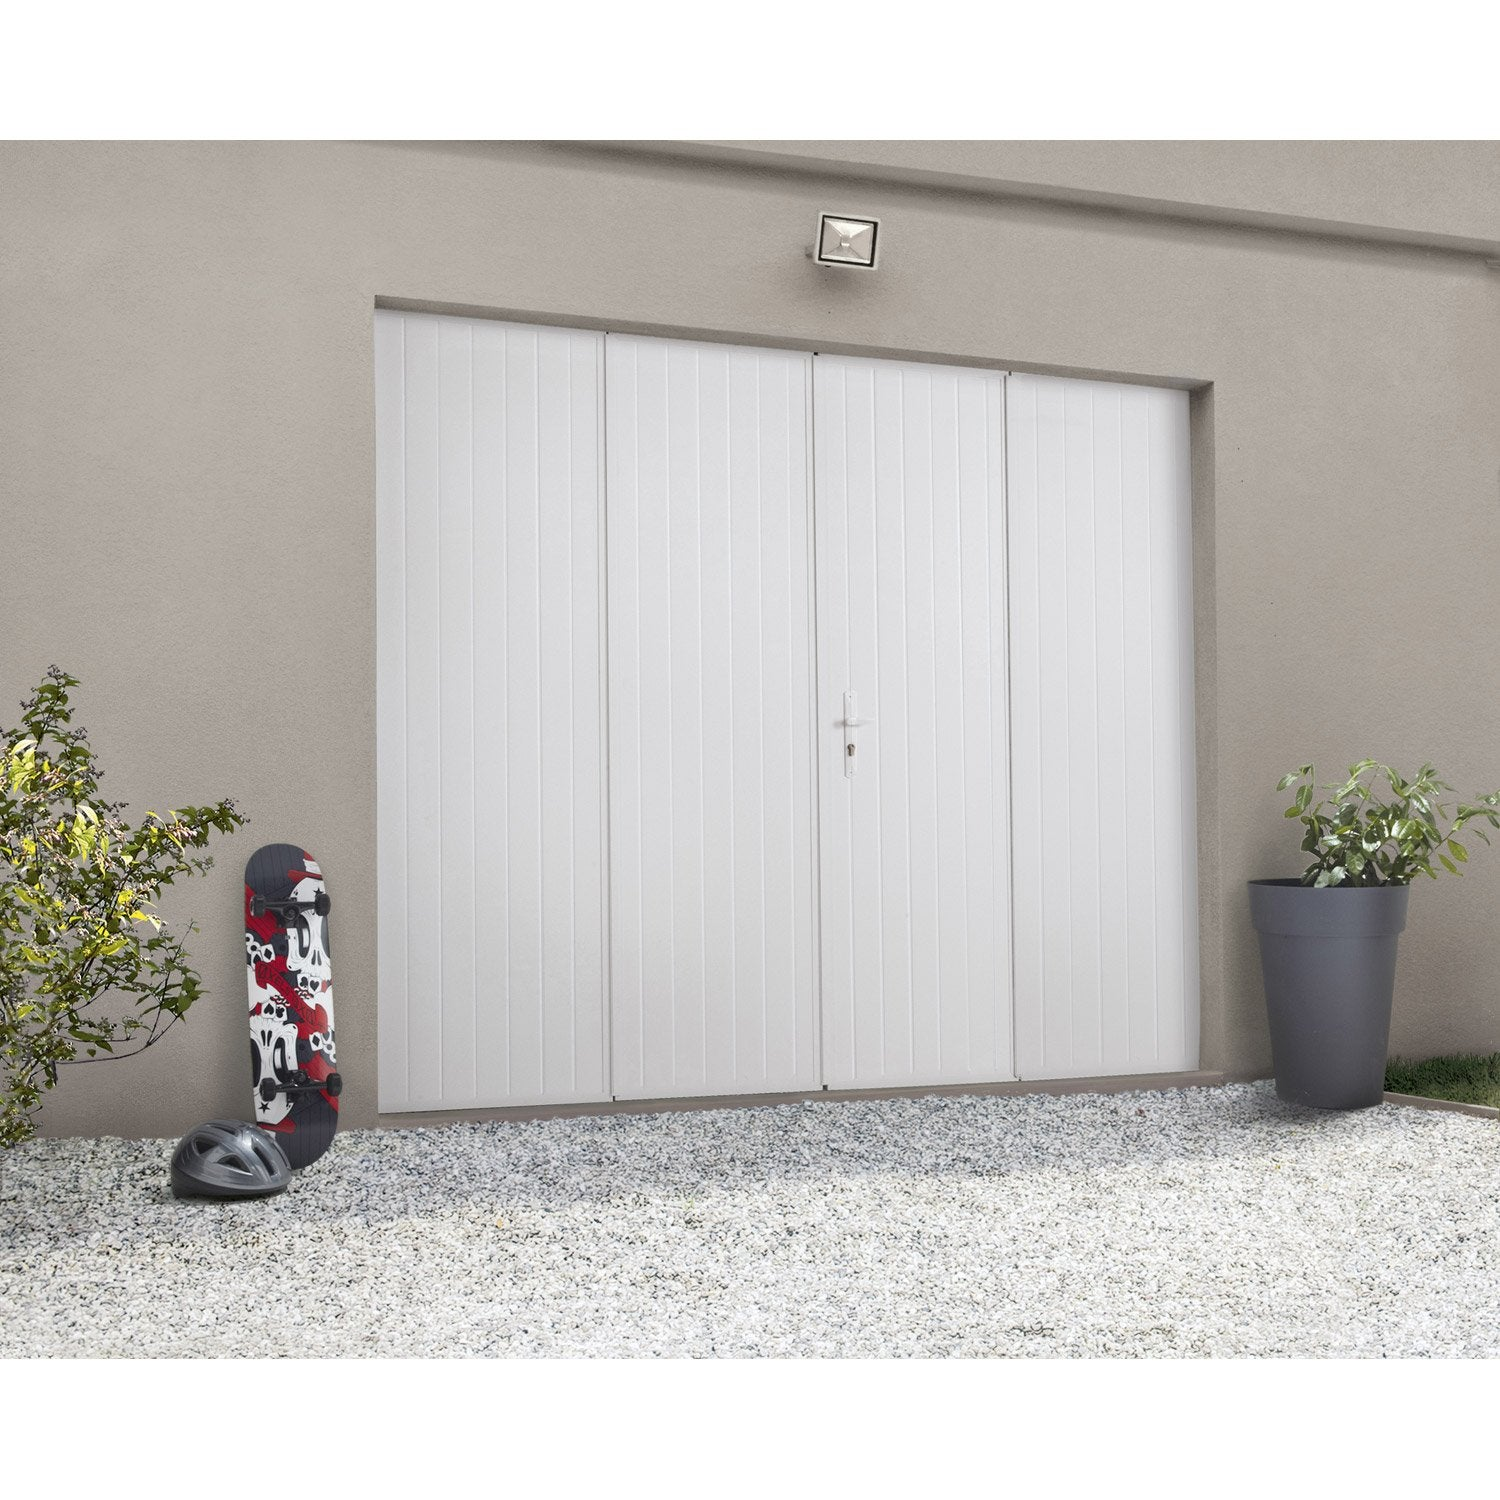 Porte de garage pliante manuelle artens essentiel 200 x for Avis porte de garage sectionnelle leroy merlin